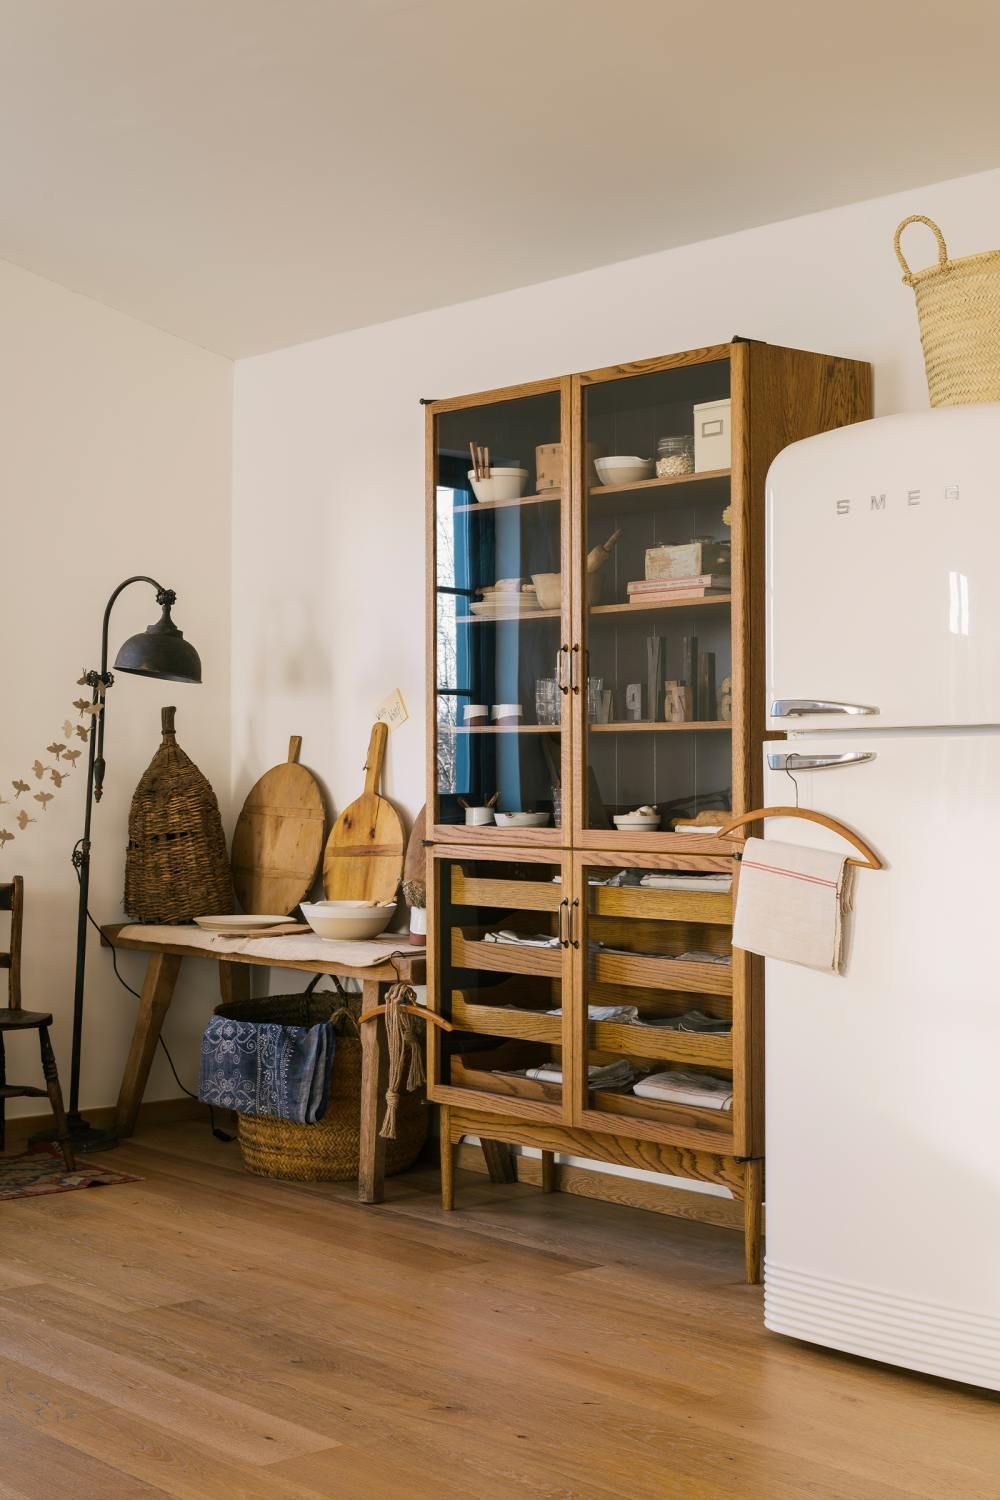 Devol Kitchens Simple Furniture Beautifully Made Kitchens Bathrooms And Interiors Furniture Simple Furniture Unfitted Kitchen